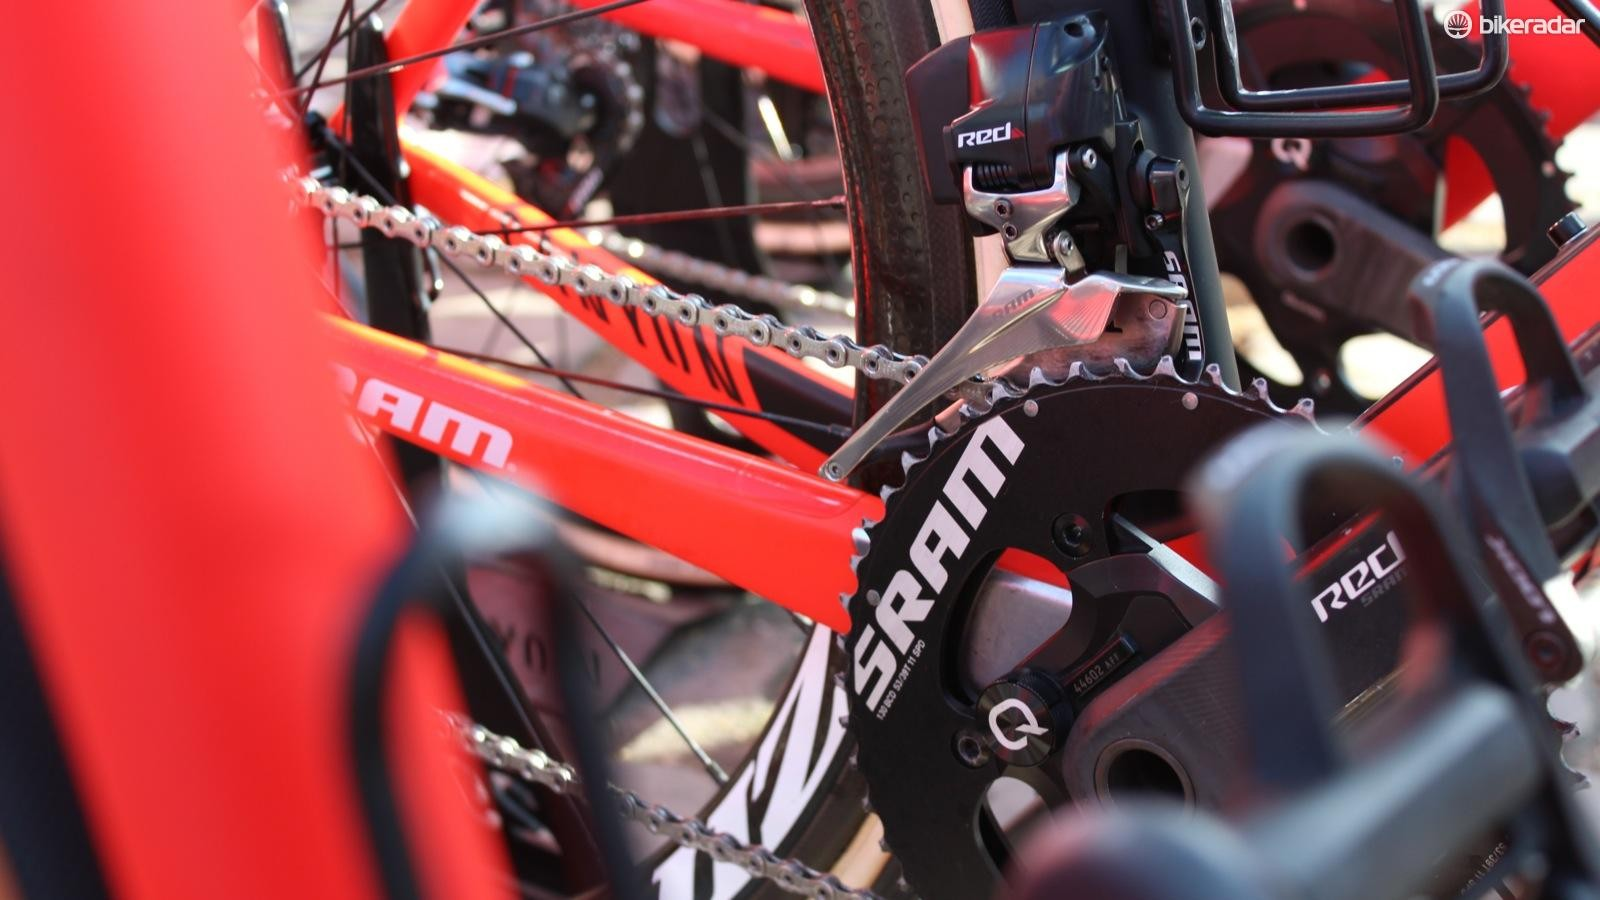 Electronic gears were everywhere at Paris-Roubaix this year. Team Katusha rode SRAM Red eTap — with SRAM-branded rings after riding the Tour of Flanders on blacked-out Rotor rings